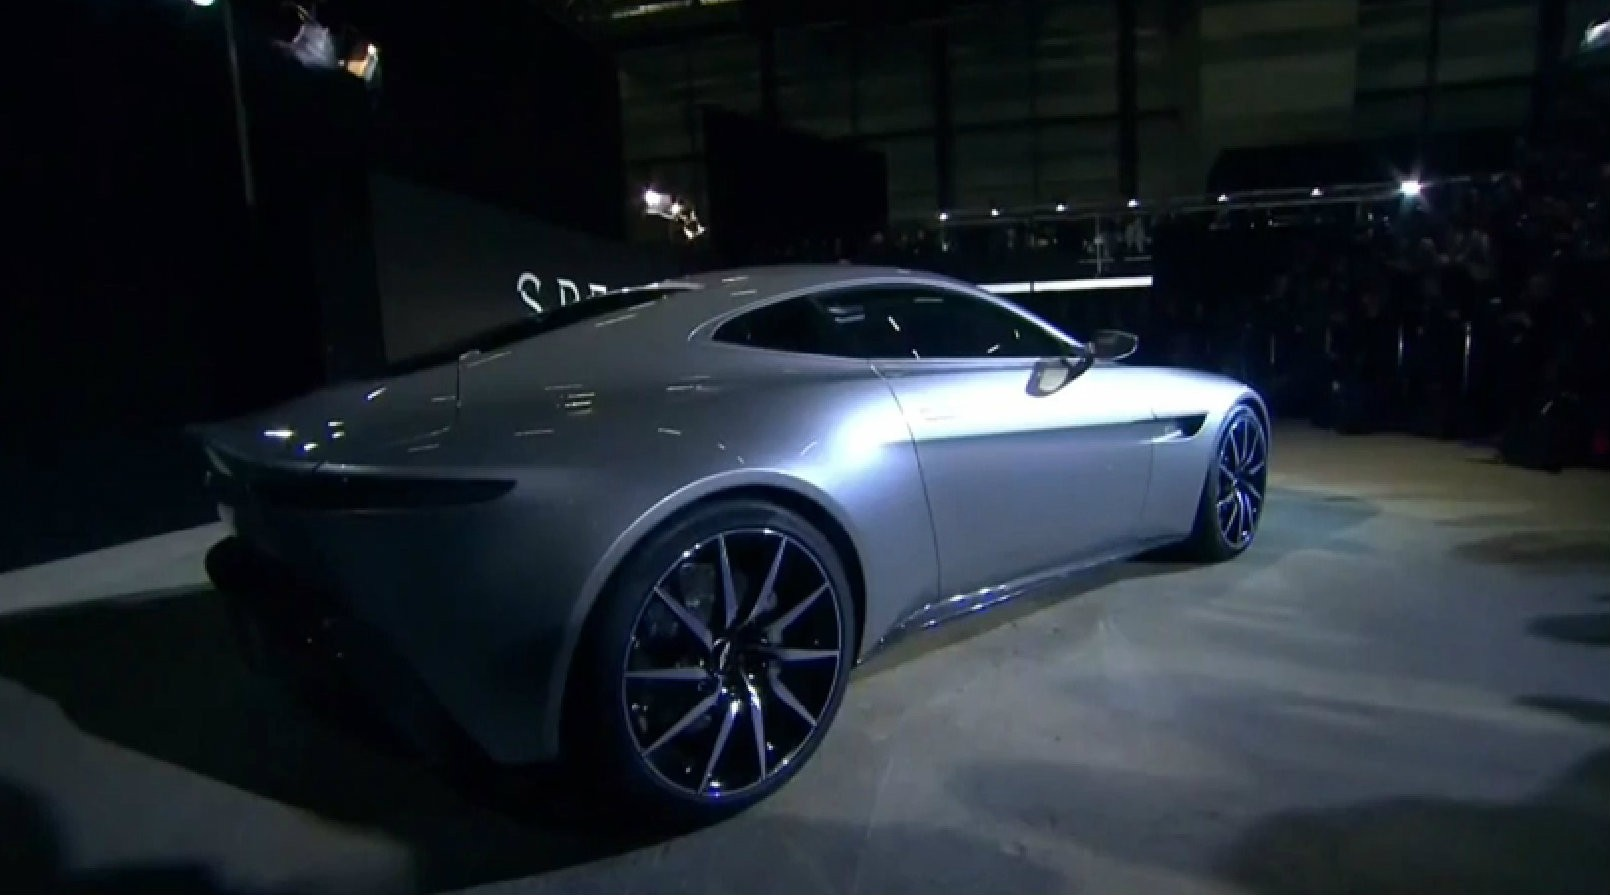 Aston Martin Db Unveiled Its The Star Of James Bond Spectre Video Photo Gallery